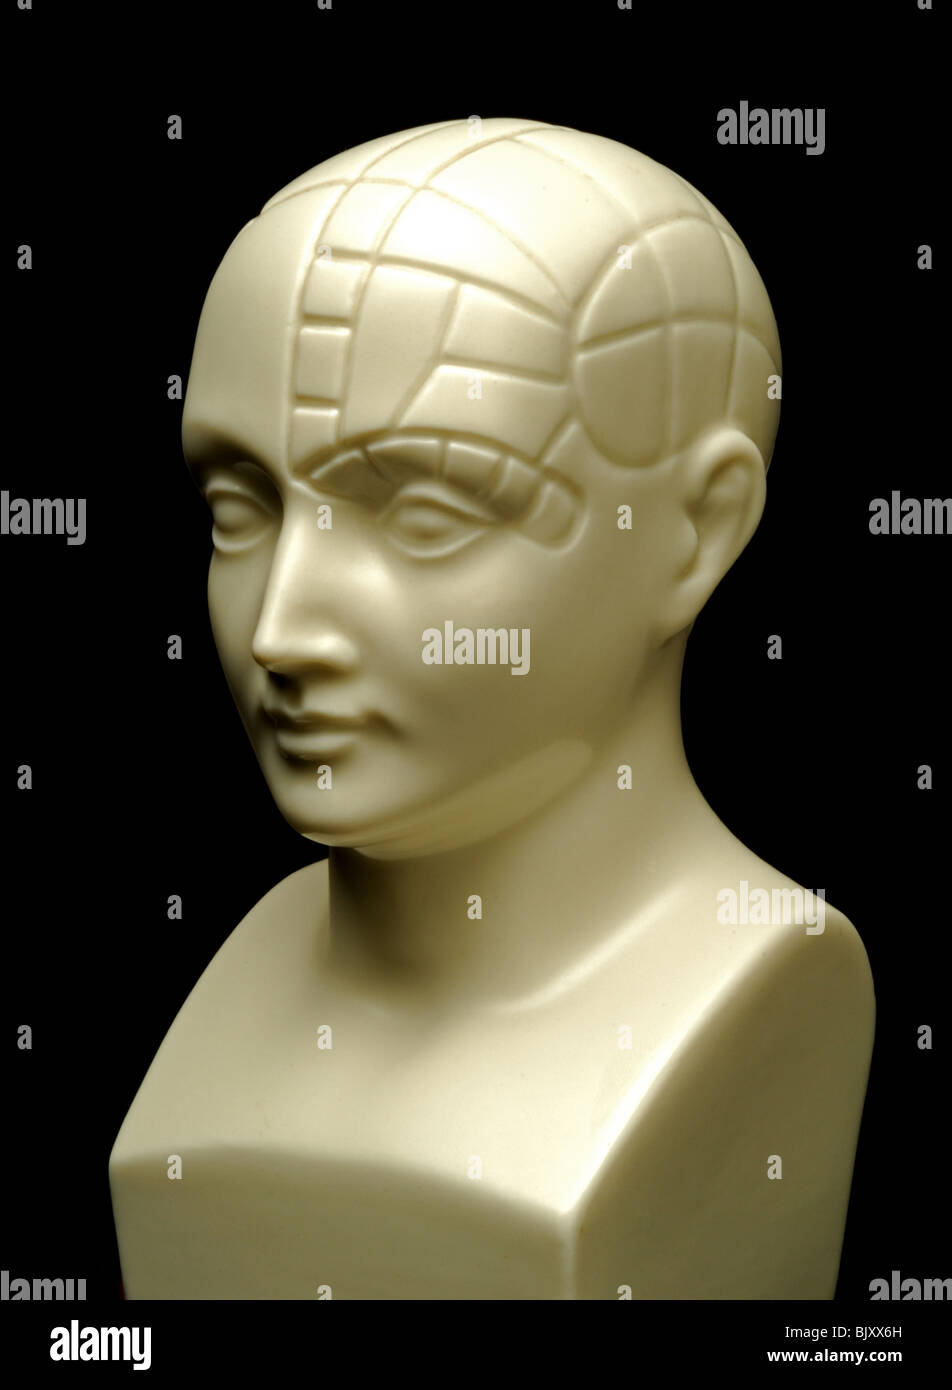 A bust of a phrenology head - Stock Image